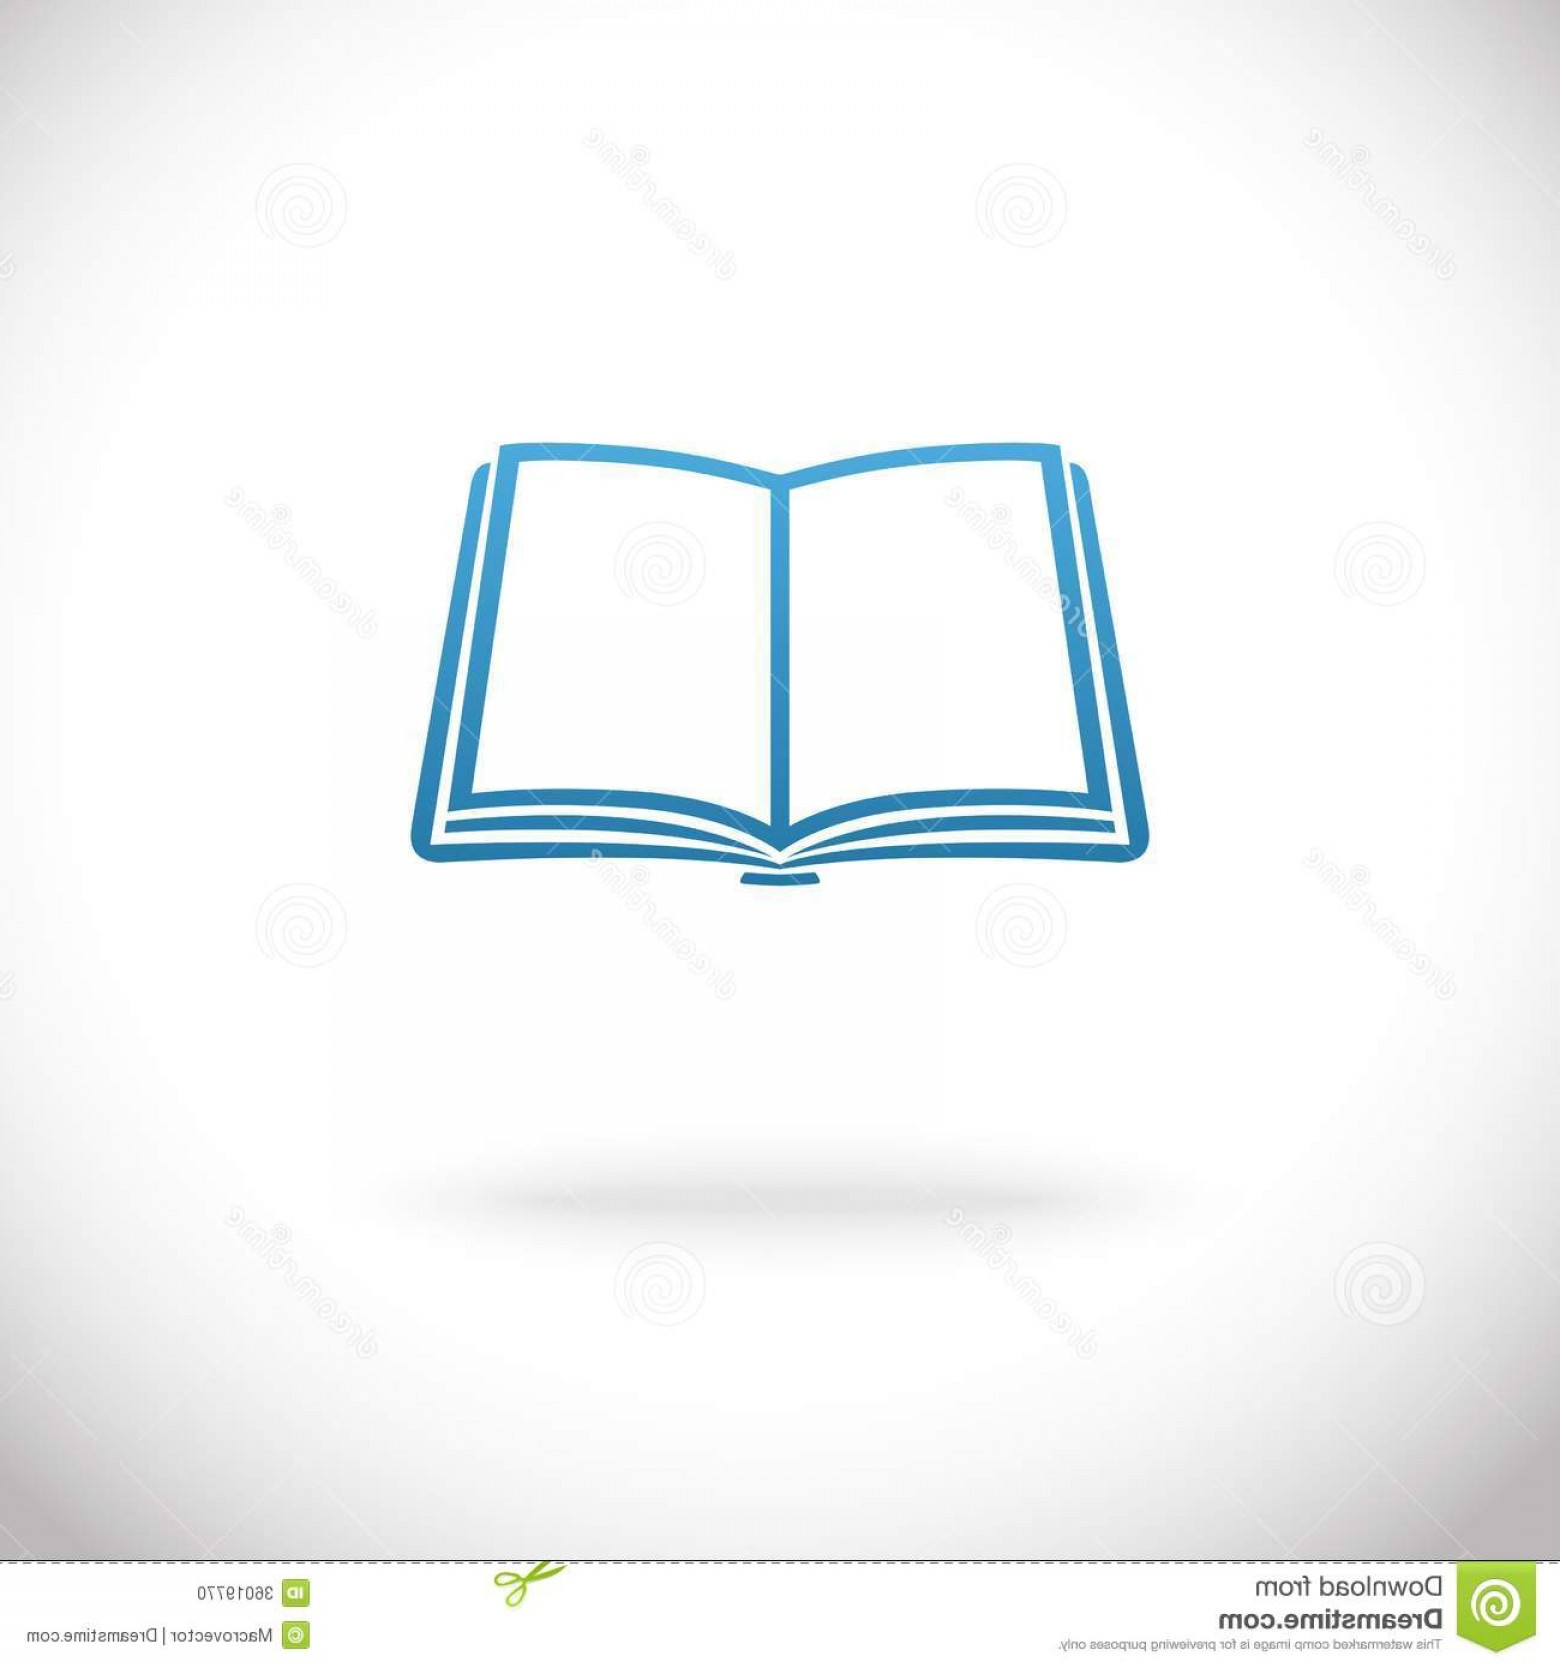 Open Book Vector Flat: Stock Photo Open Book Icon Vector Illustration Image